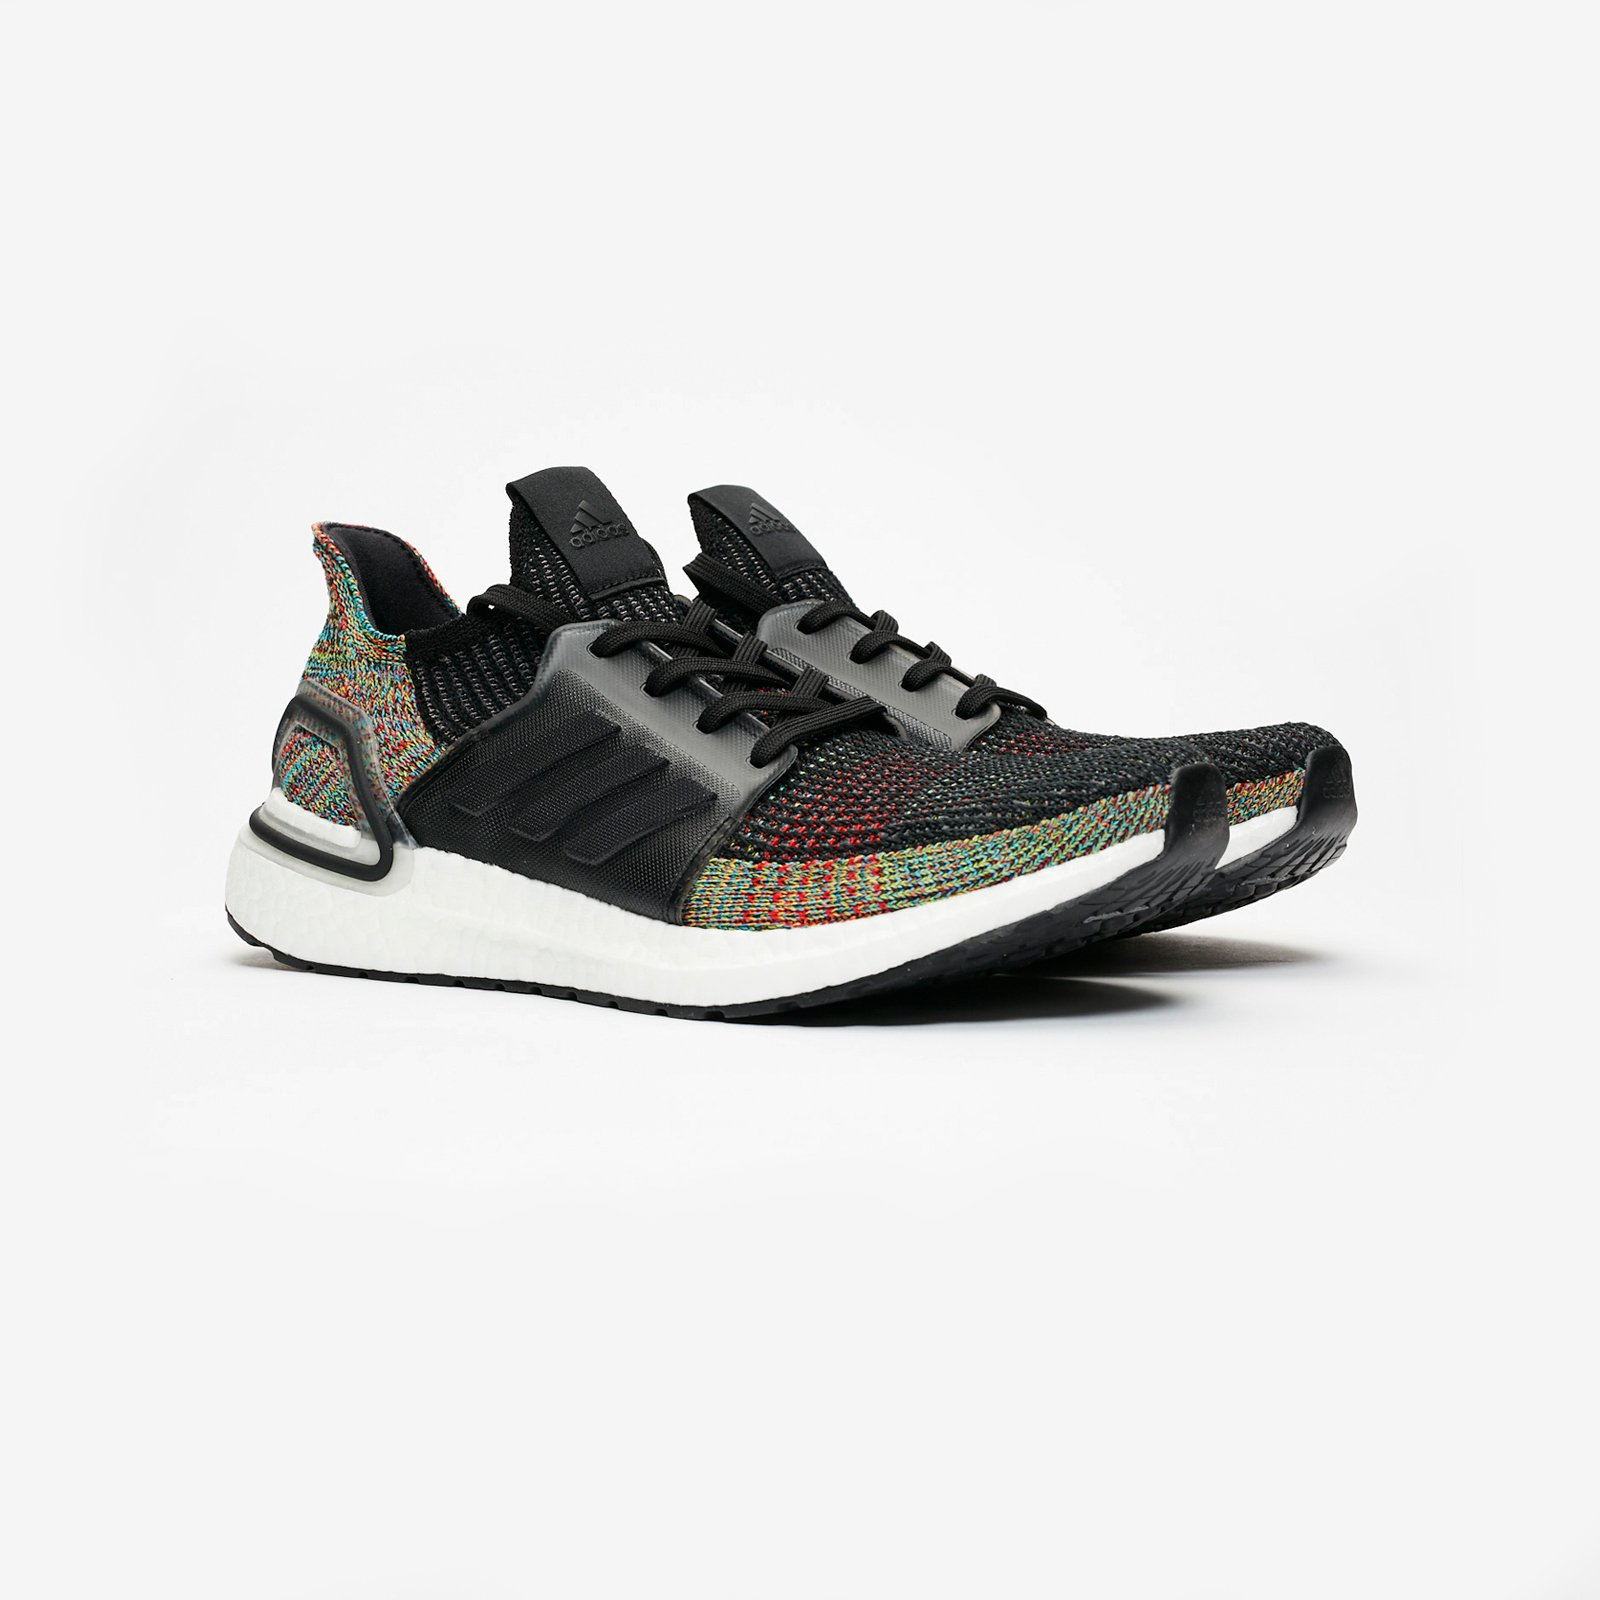 reputable site caf10 70f8a adidas Performance Ultraboost 19